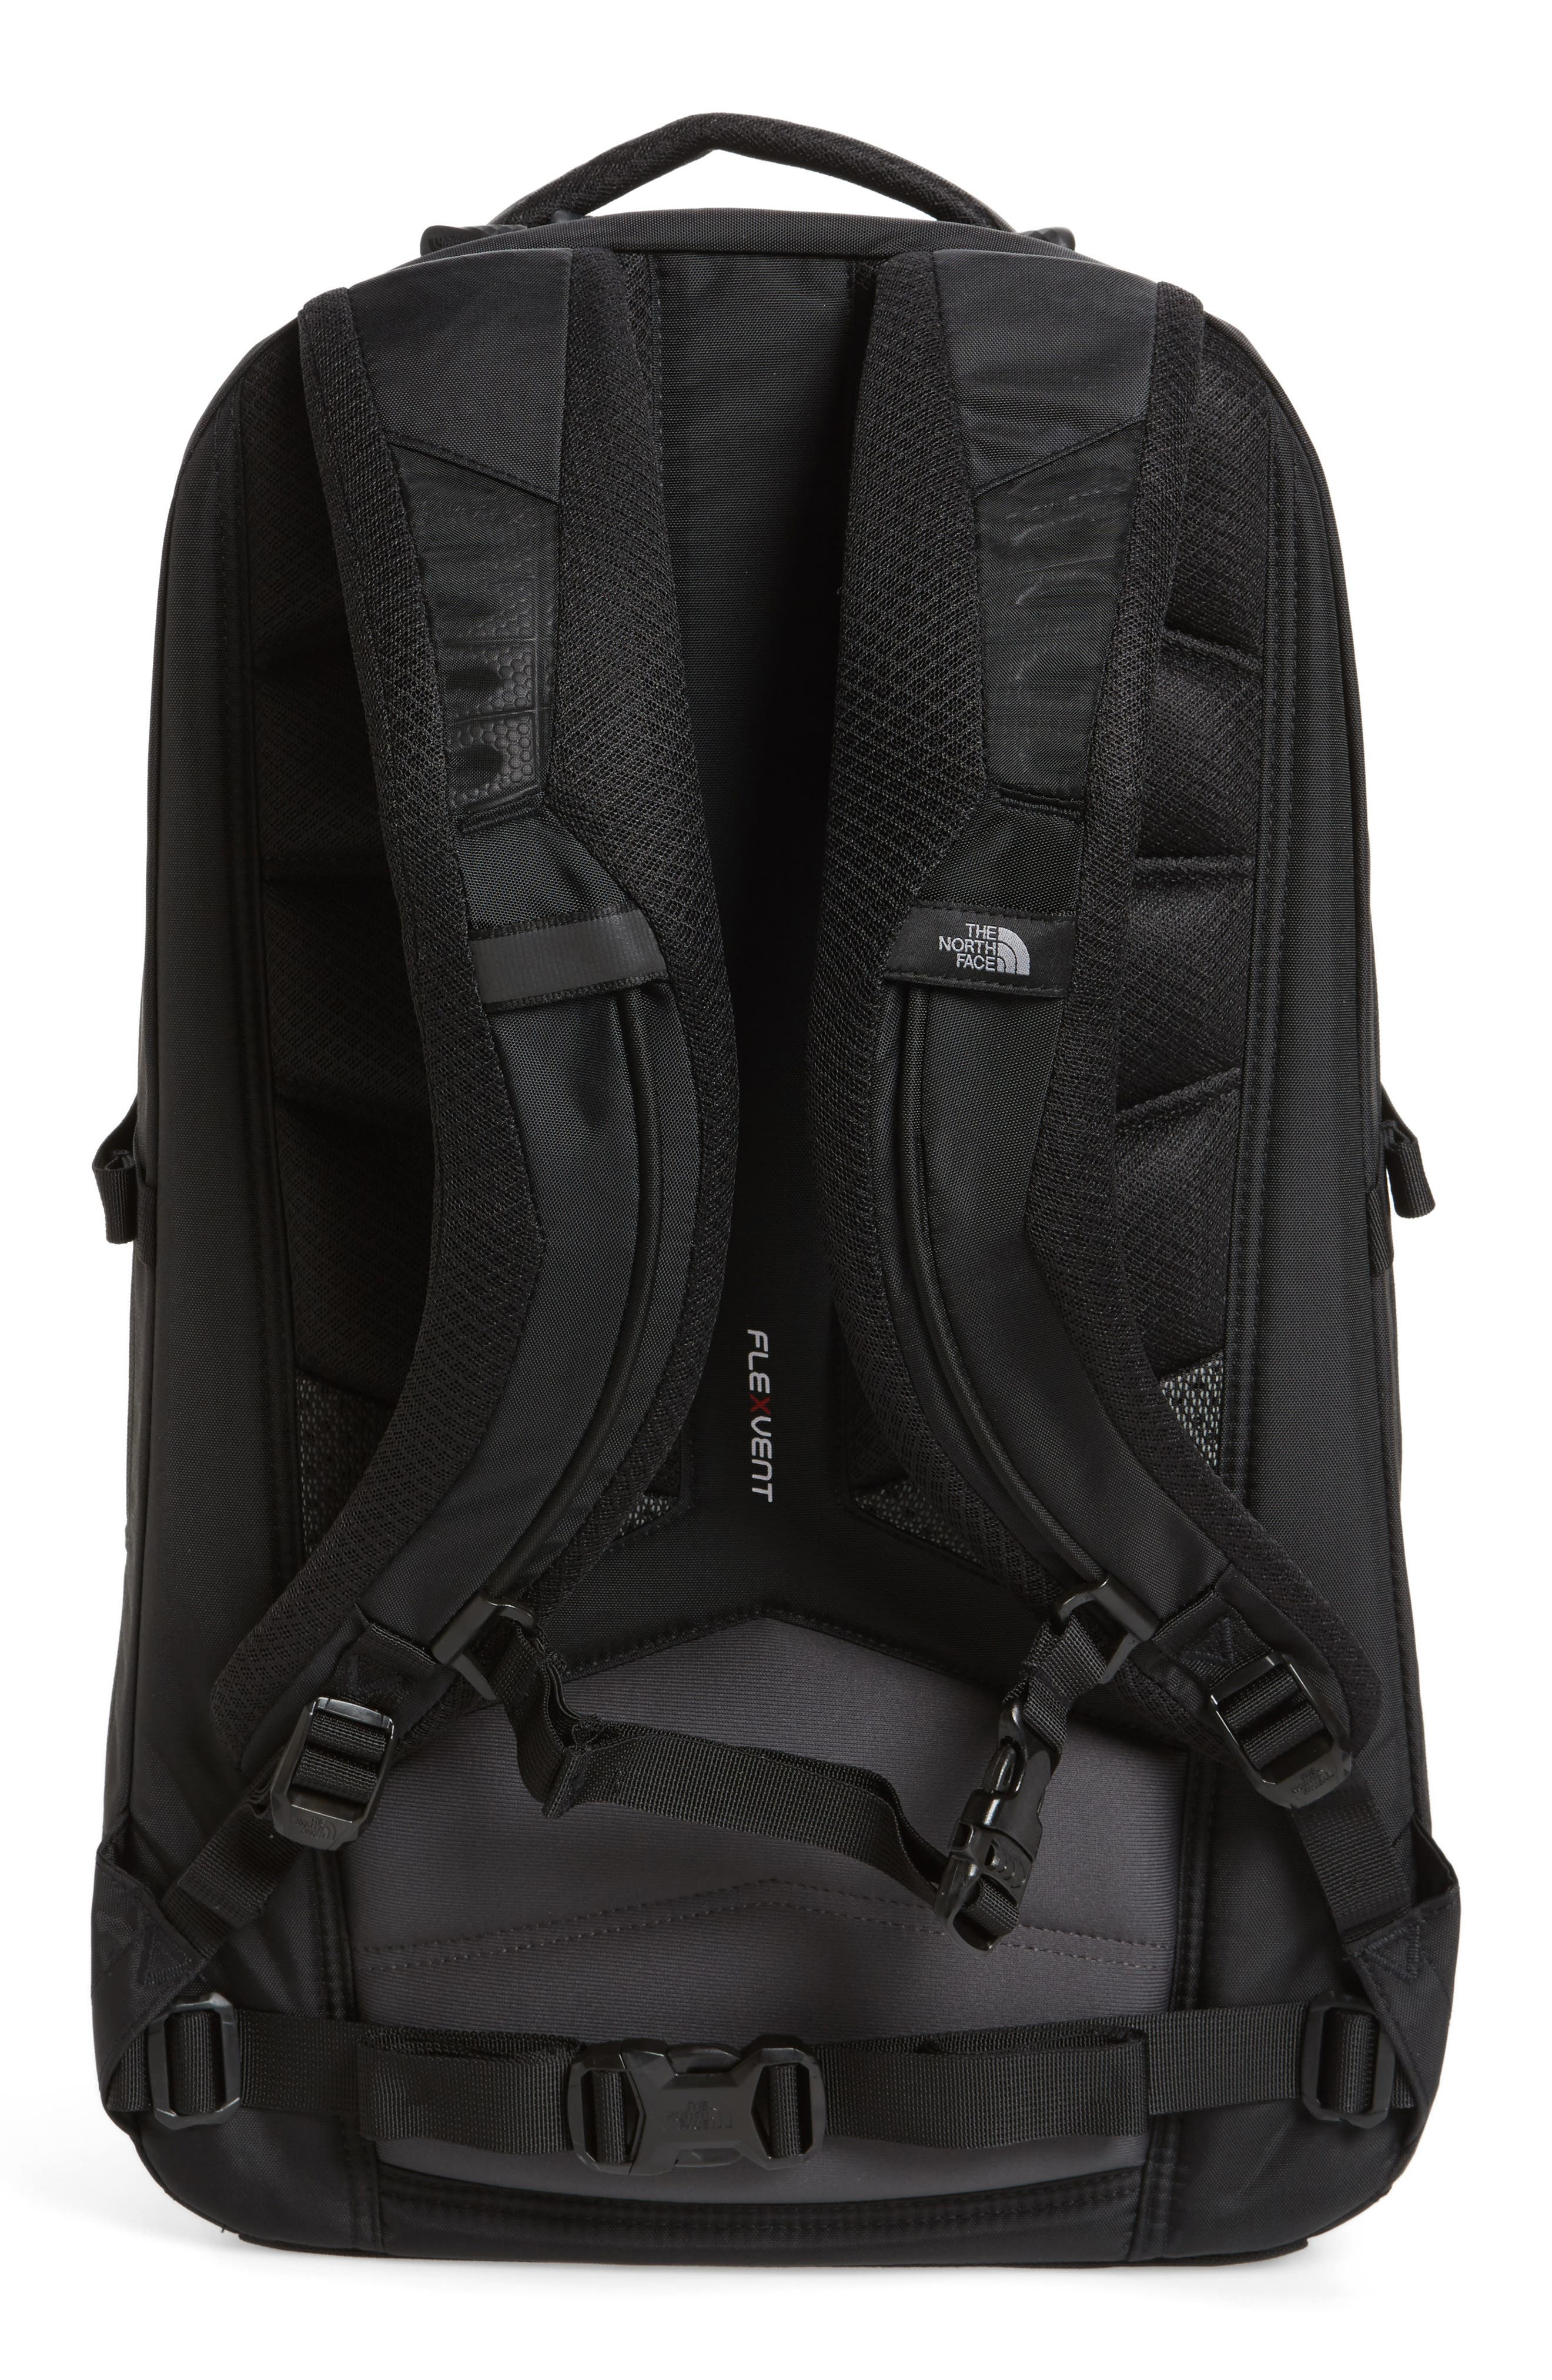 Router Backpack,                             Alternate thumbnail 3, color,                             001